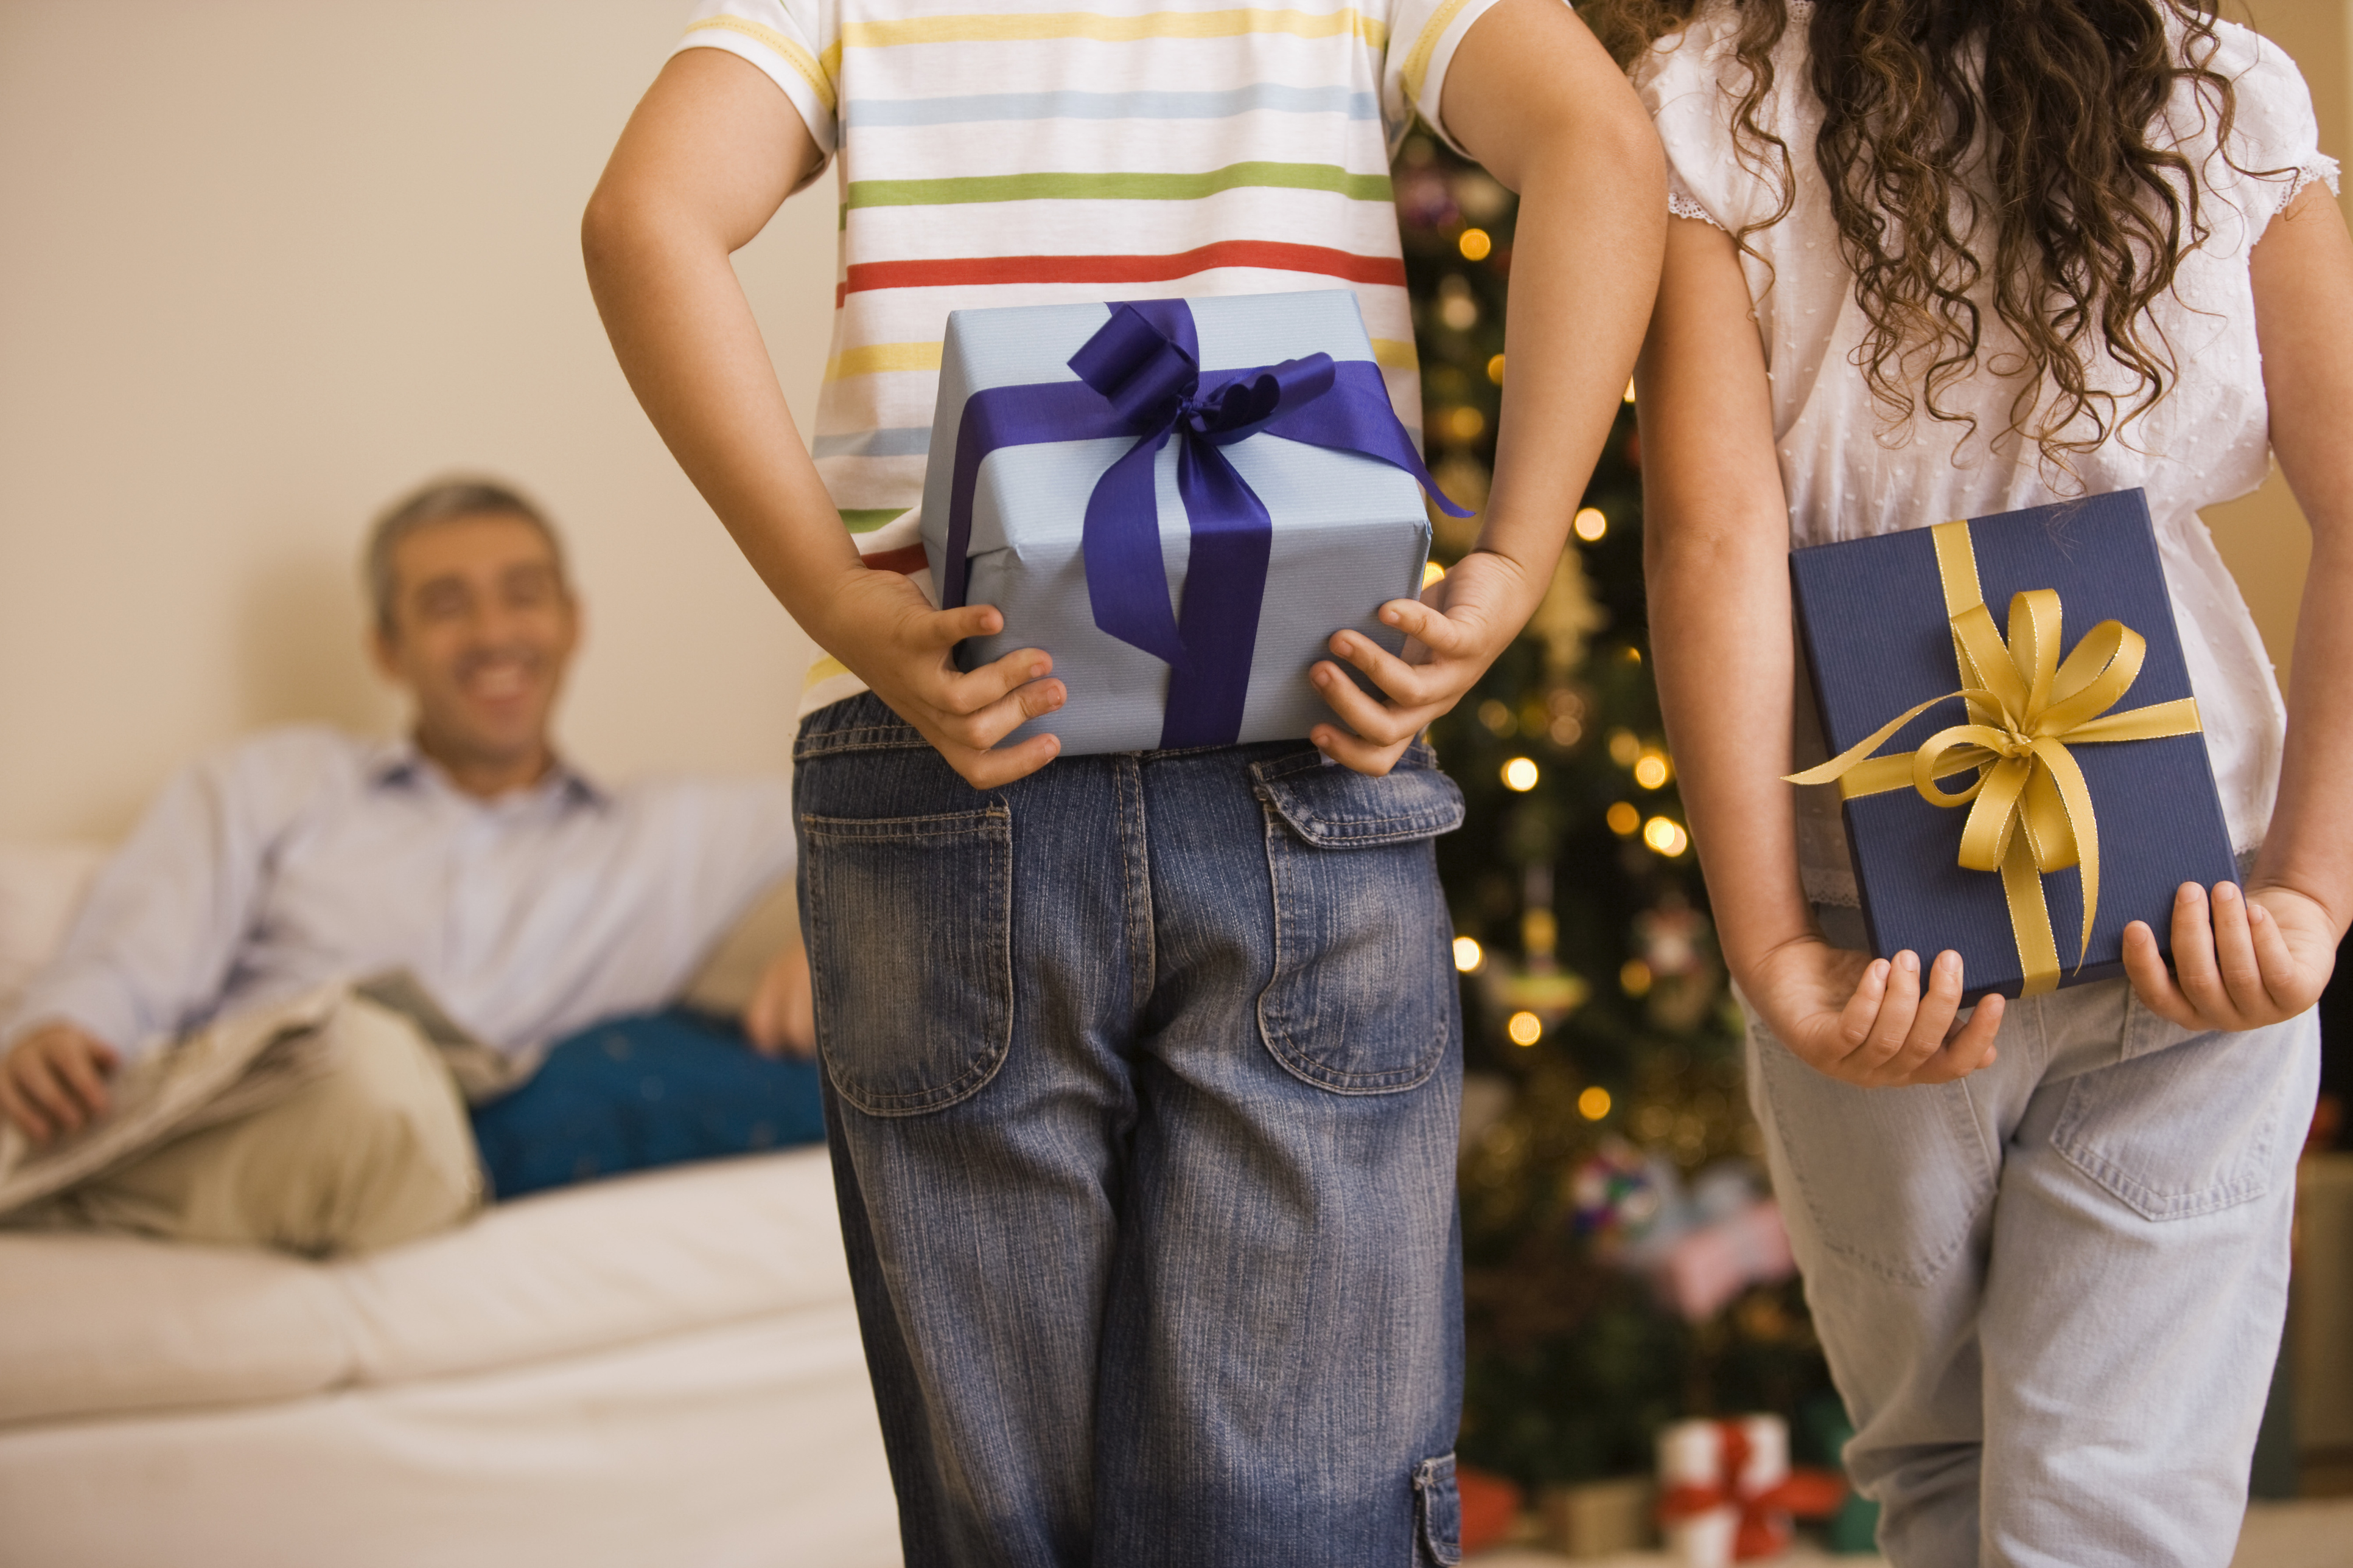 Etiquette for giving, receiving gifts this holiday